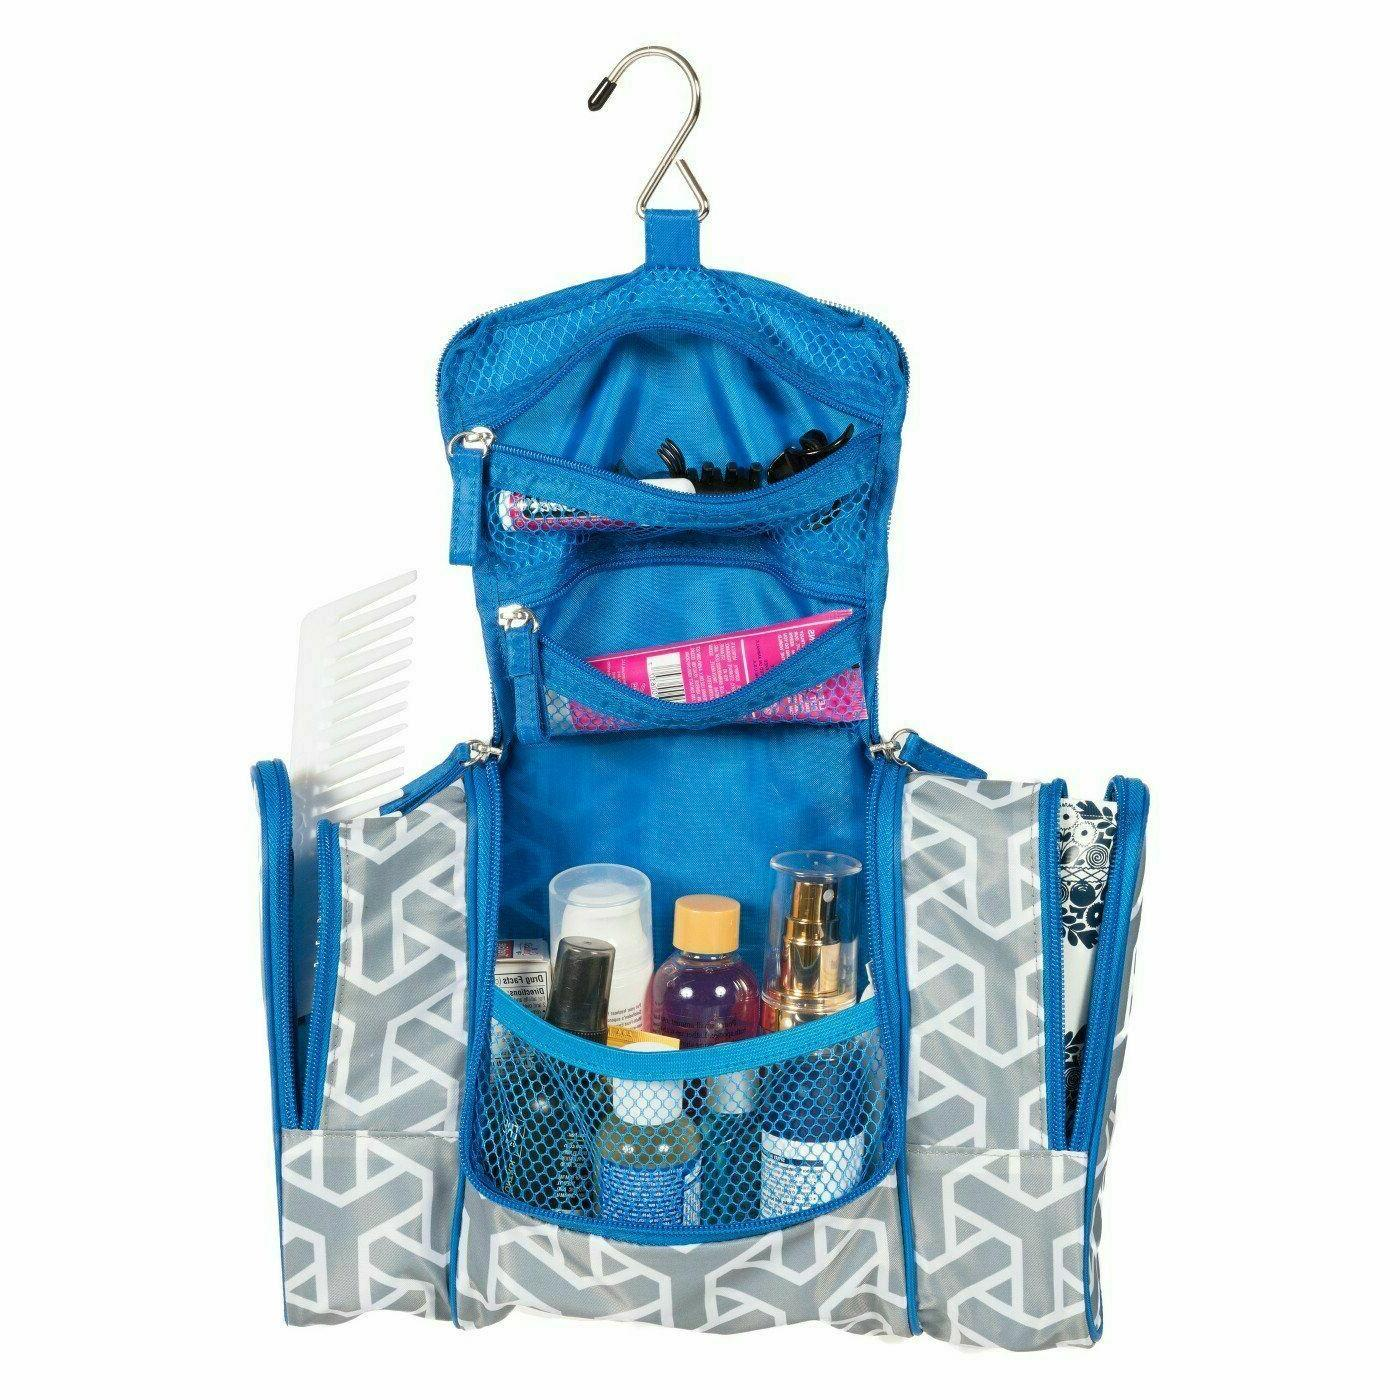 Flat Pack Toiletry Kit - / Toiletry Case Accessory